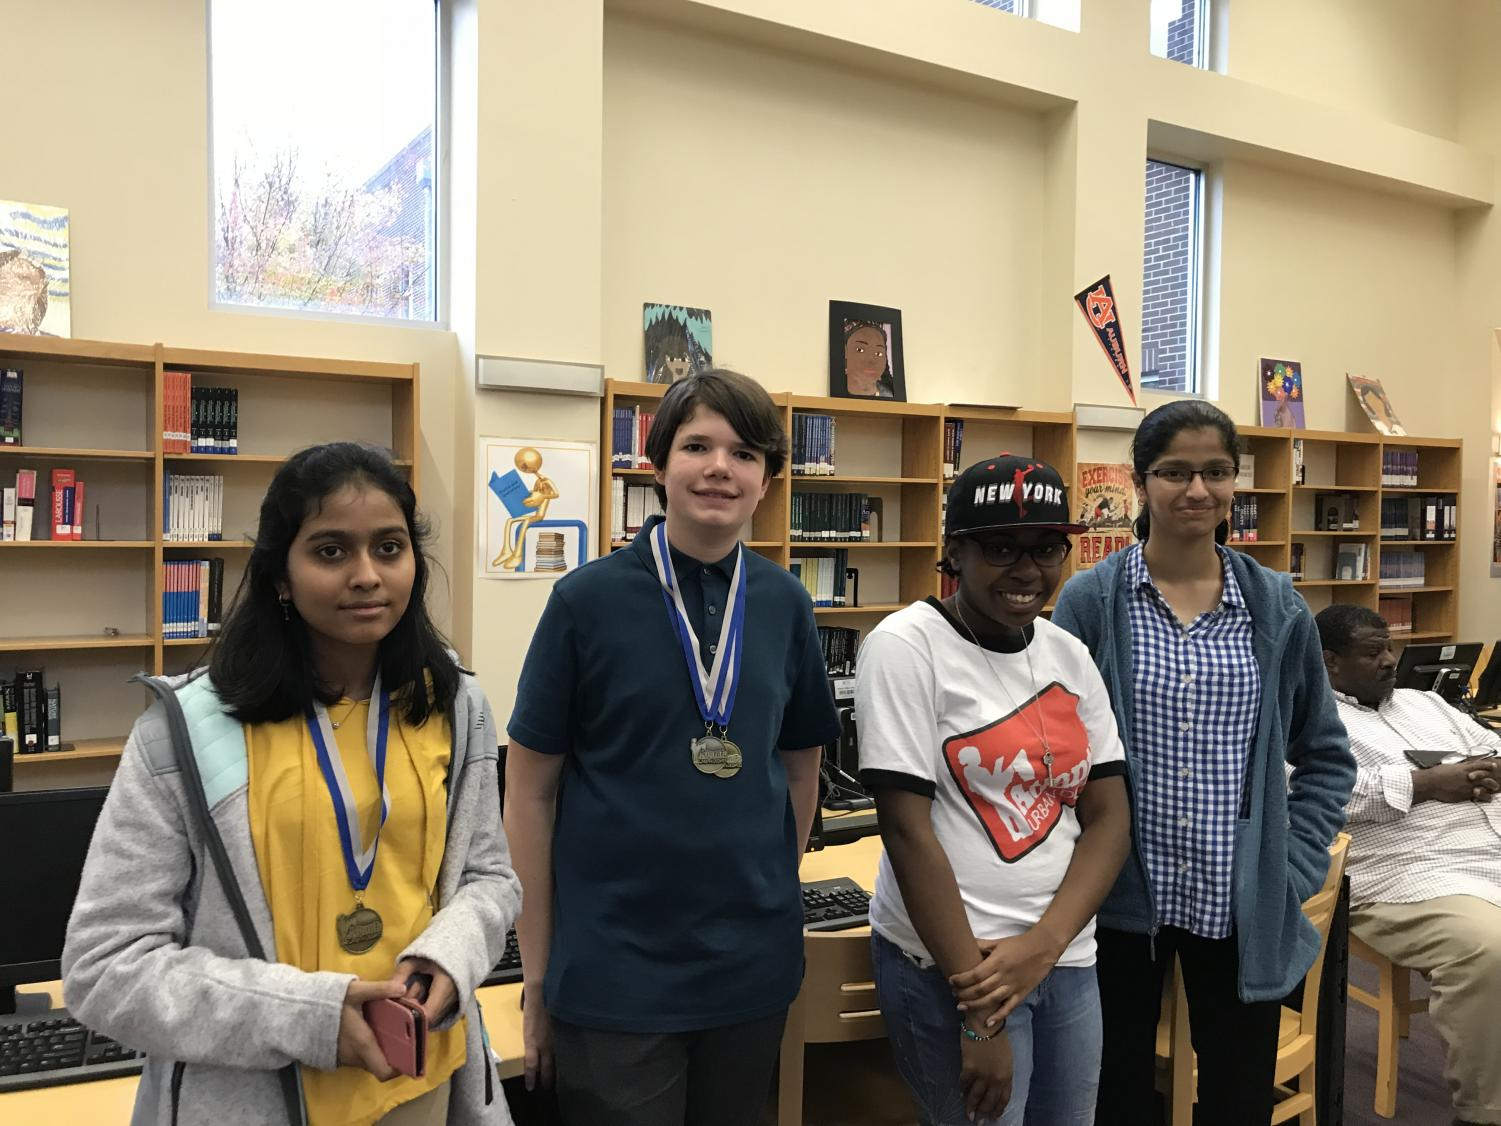 Chamblee debaters pose with a tournament judge after their December 1 competition. From left to right: freshman Tanzalia Jamal, freshman Keegan Brooks, judge Diane Sharp, and freshman Nikita Kunte.